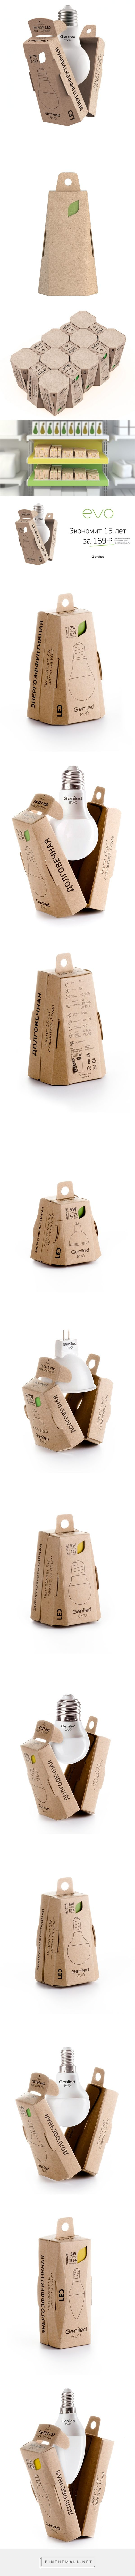 The Economical #Packaging EVO #lightbulbs designed by Evgeniy Pelin - Me recuerda a encargos de la universidad